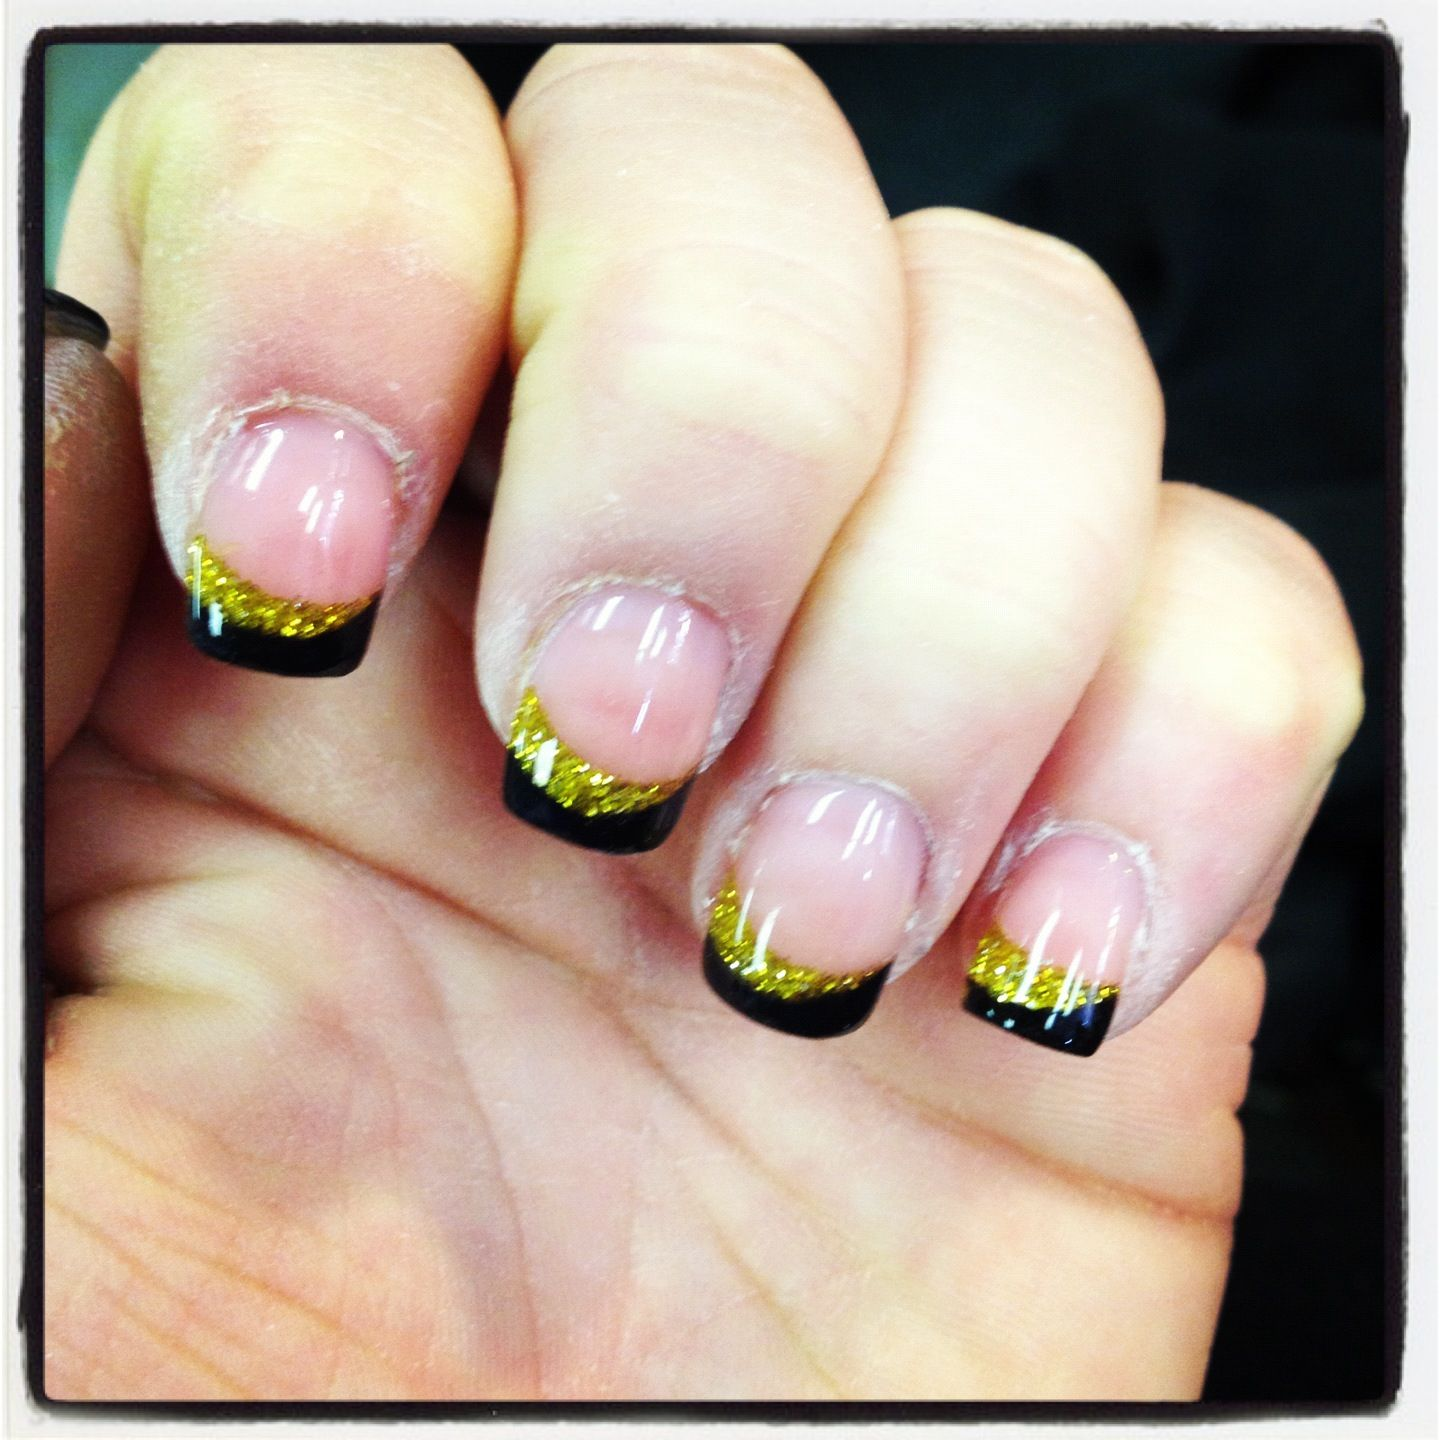 Here we go steelers nails   ~!NAILS!~   Pinterest   Football nails ...